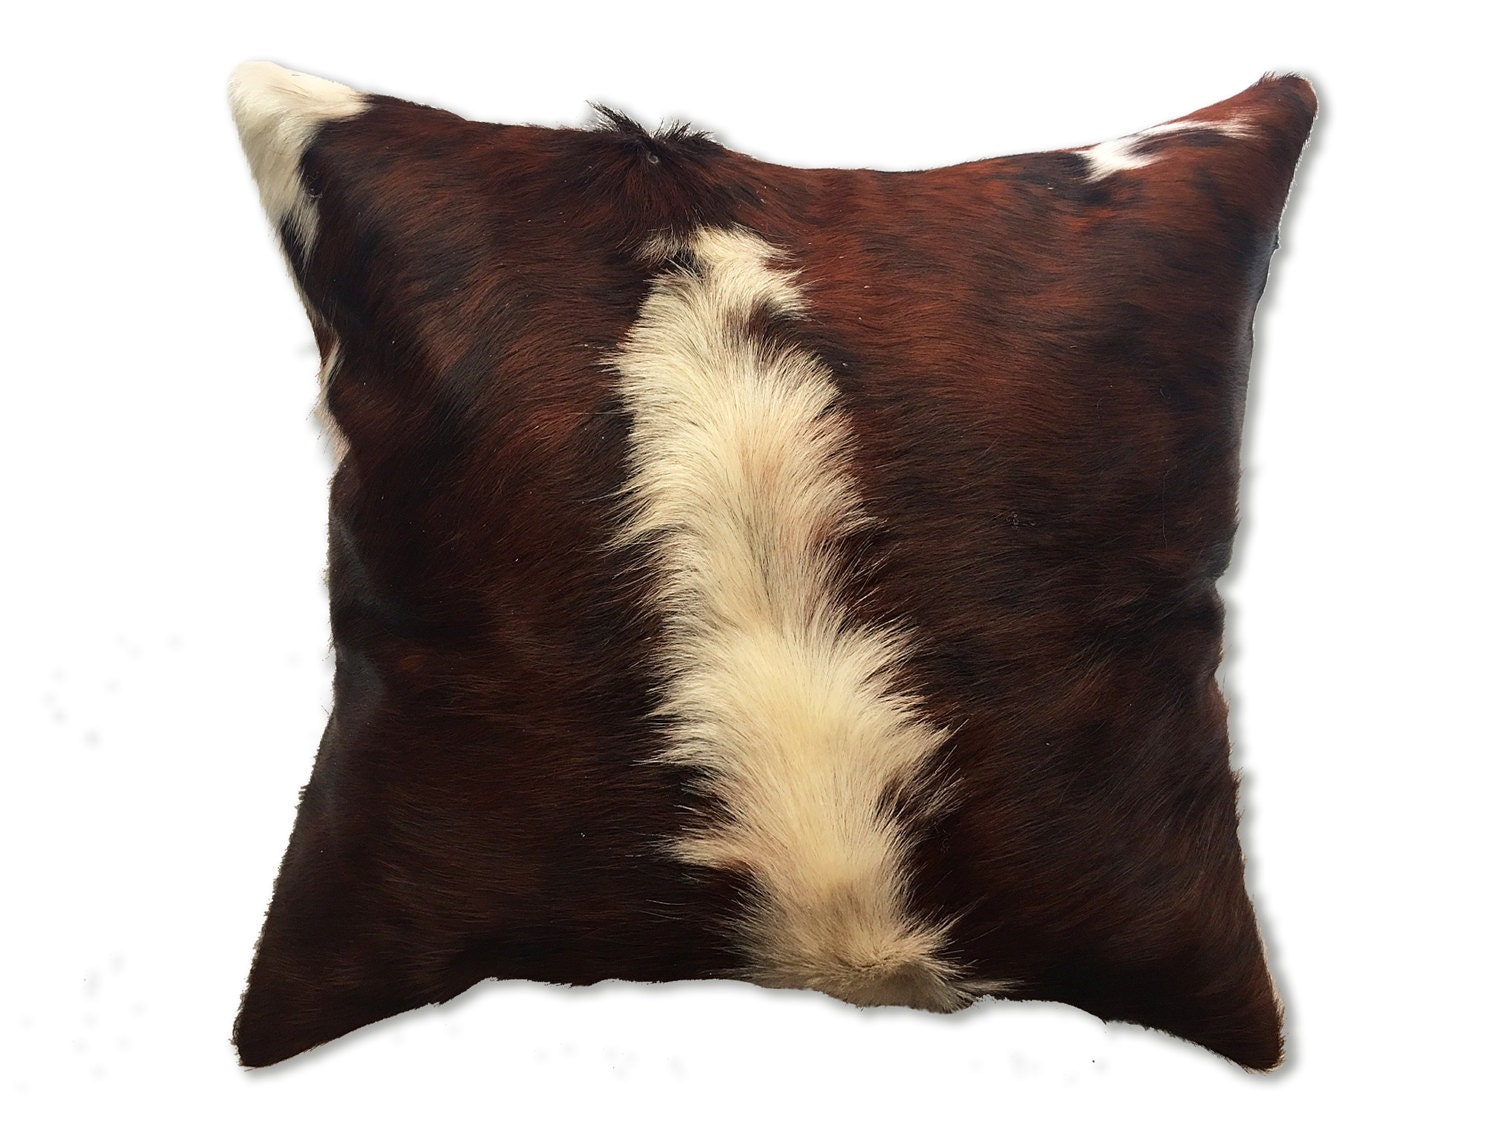 Cowhide Pillow For Home Decor Authentic Cow Hide By Camudecor